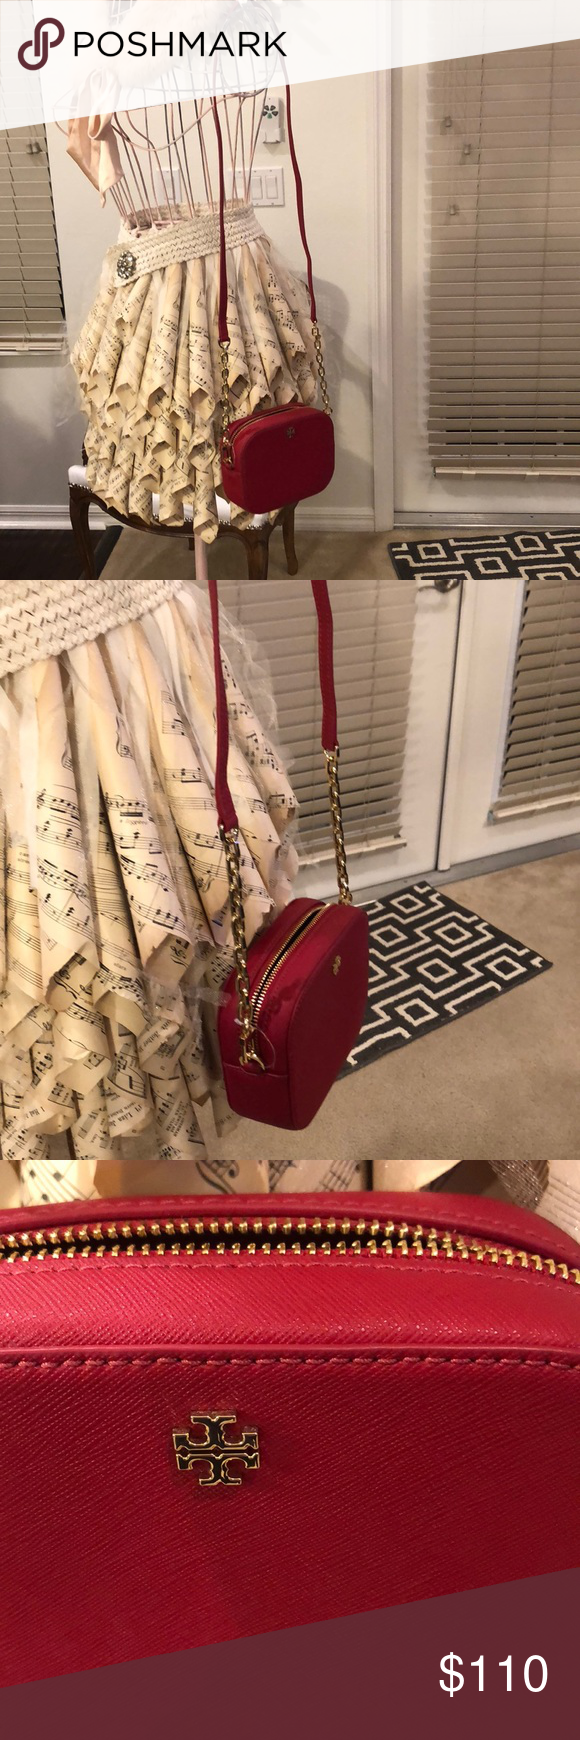 a6ec4387814 Purse Tory Burch Emerson round crossbody bag. Sturdy kir royal saffiano  leather with gold hardware. MEASUREMENTS ARE APPROXIMATE NO TRADES PRICE IS  FIRM ...